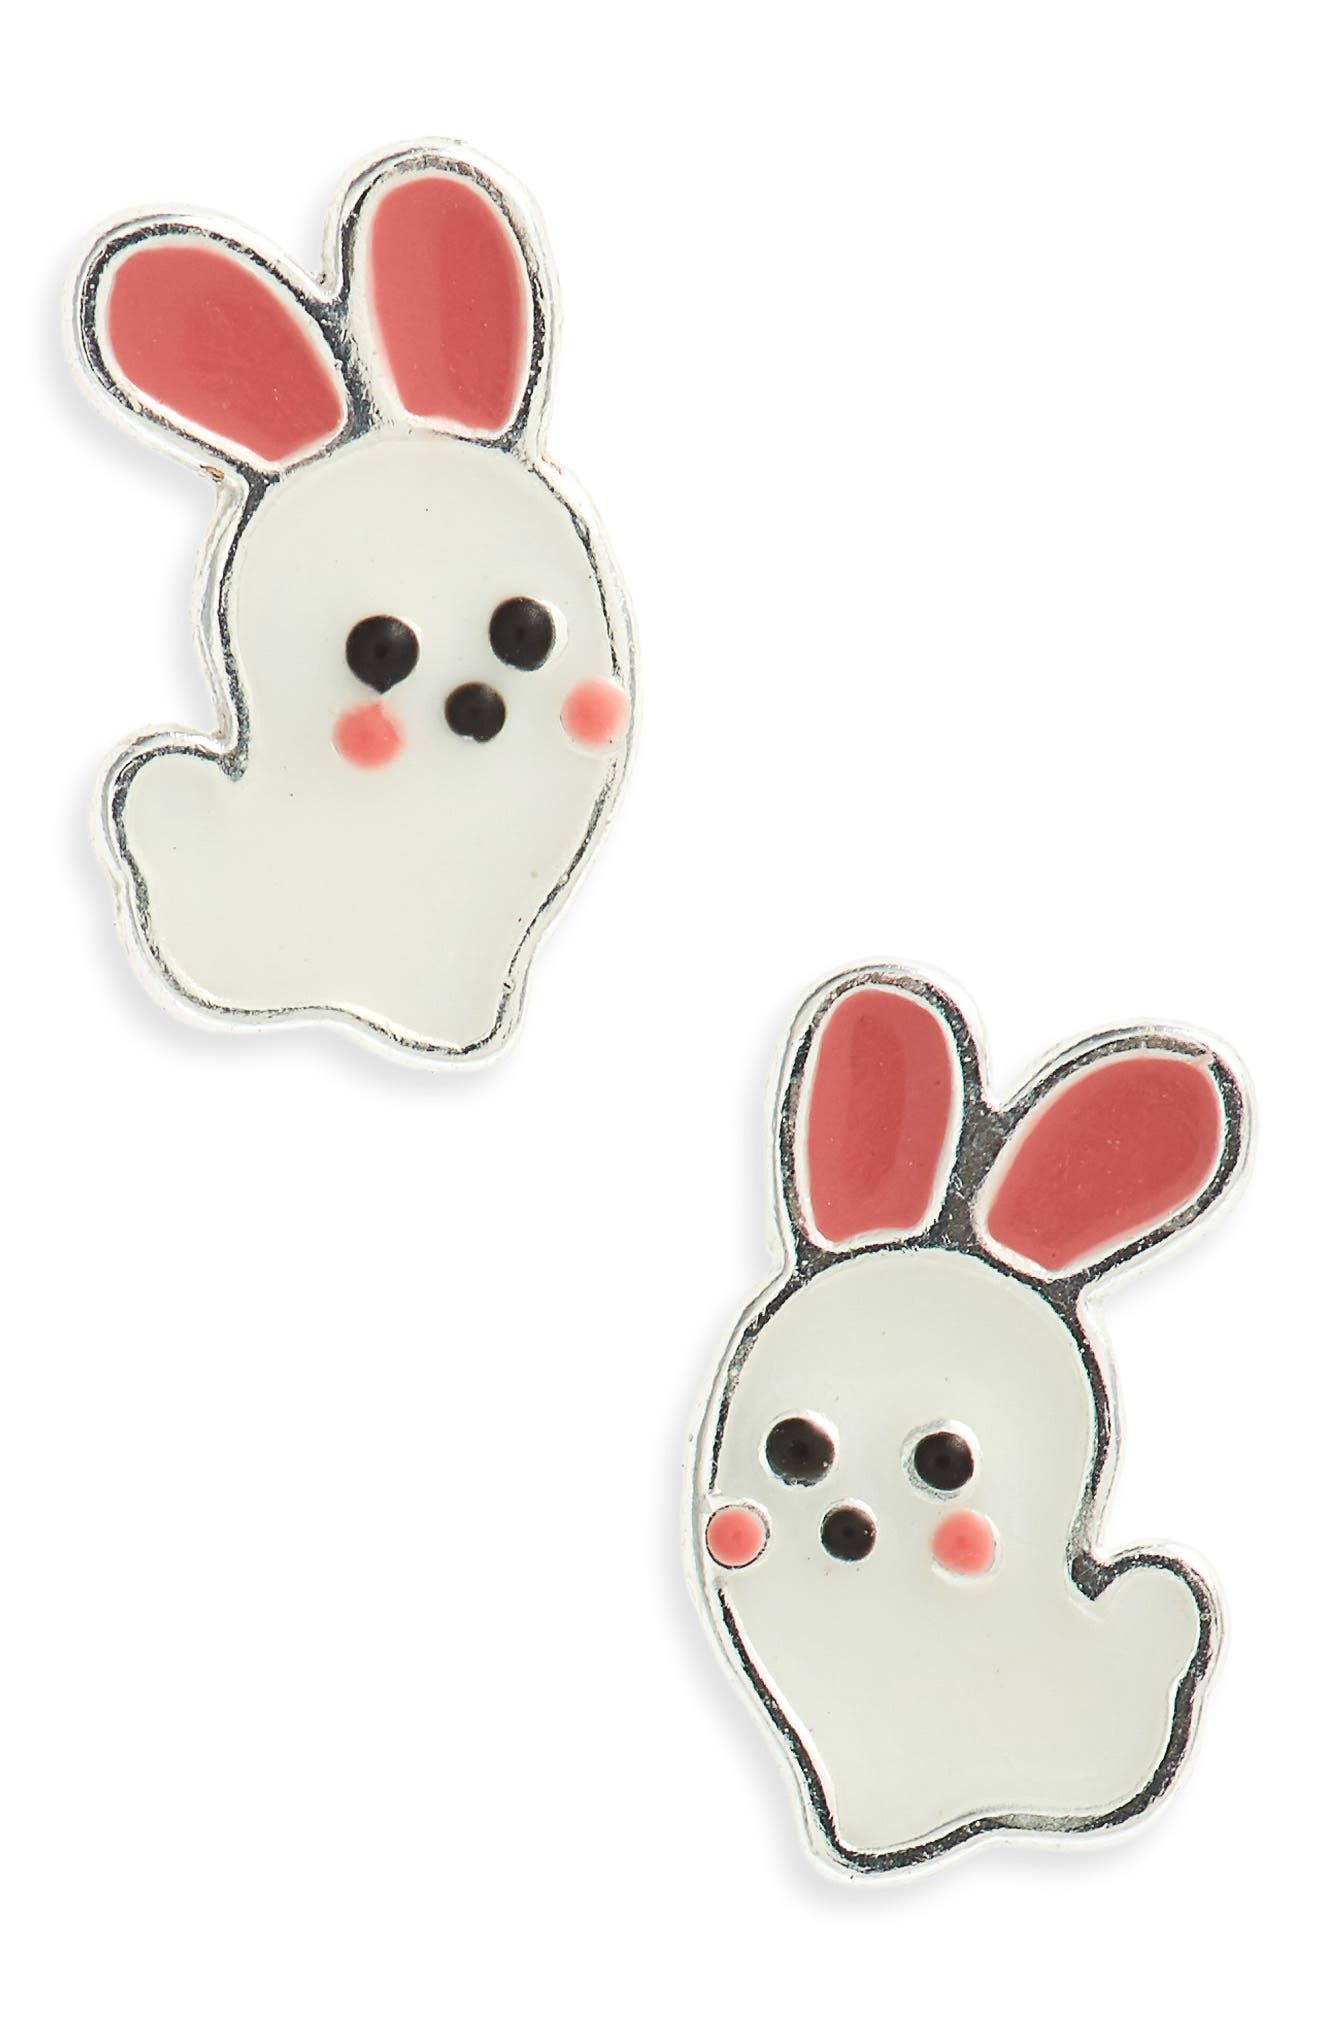 Pink Bunny Sterling Silver Stud Earrings,                             Main thumbnail 1, color,                             White